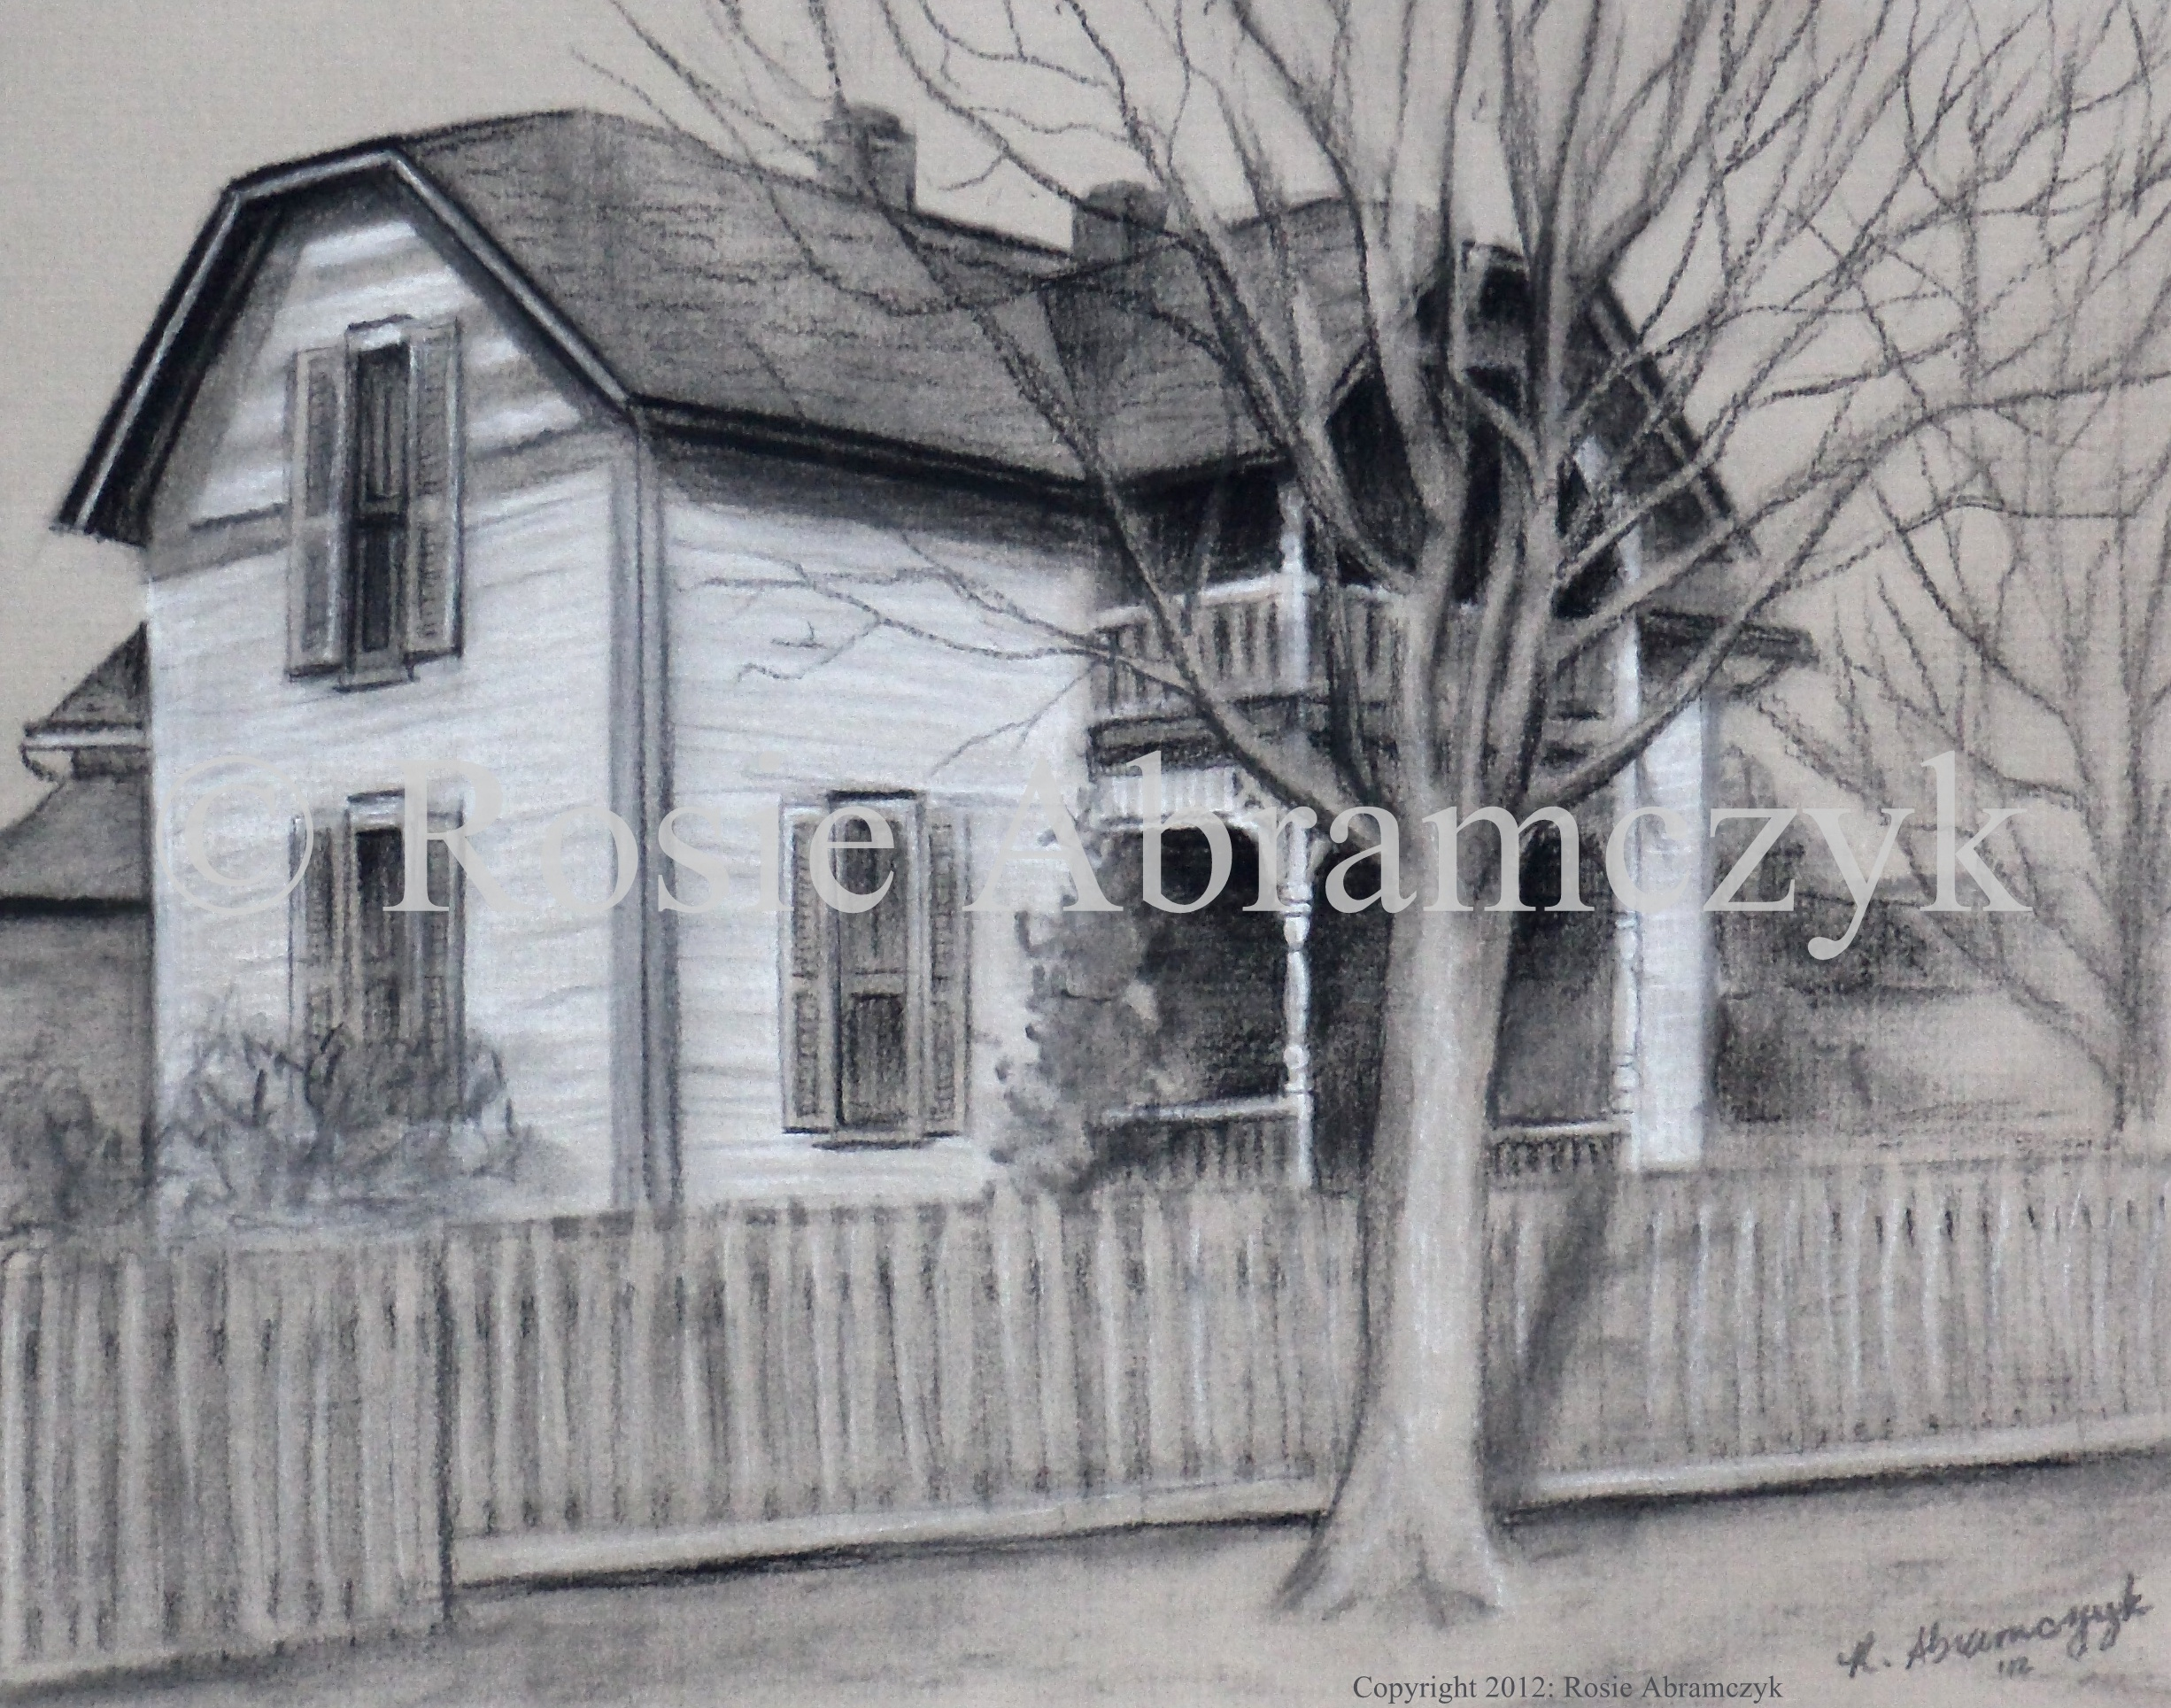 Brotherton Home, Marquand, MO, by Rosie Abramczyk, Charcoal & White Pastel, 2012